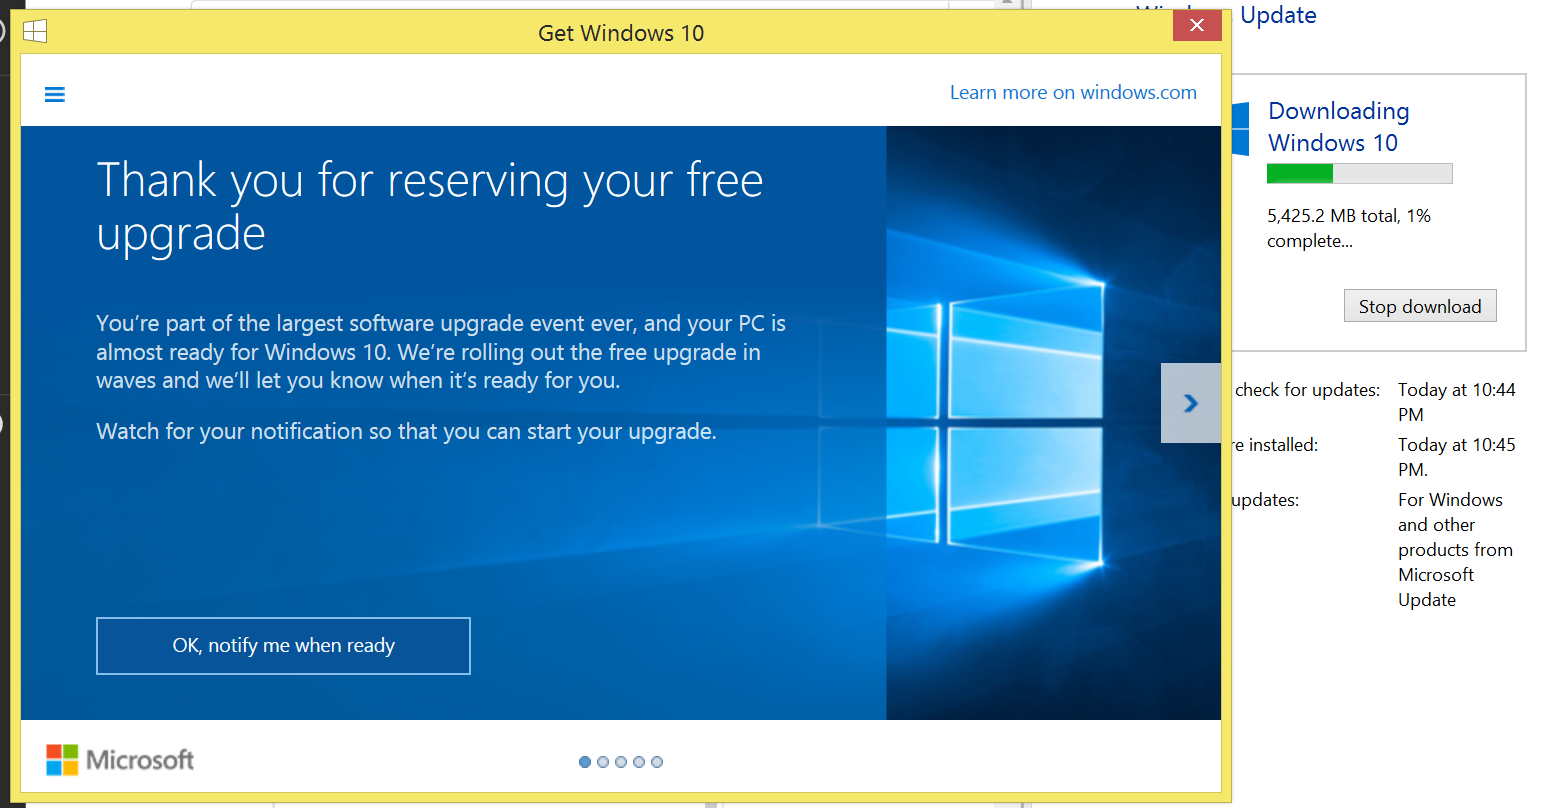 How to force Windows to start downloading the Windows 10